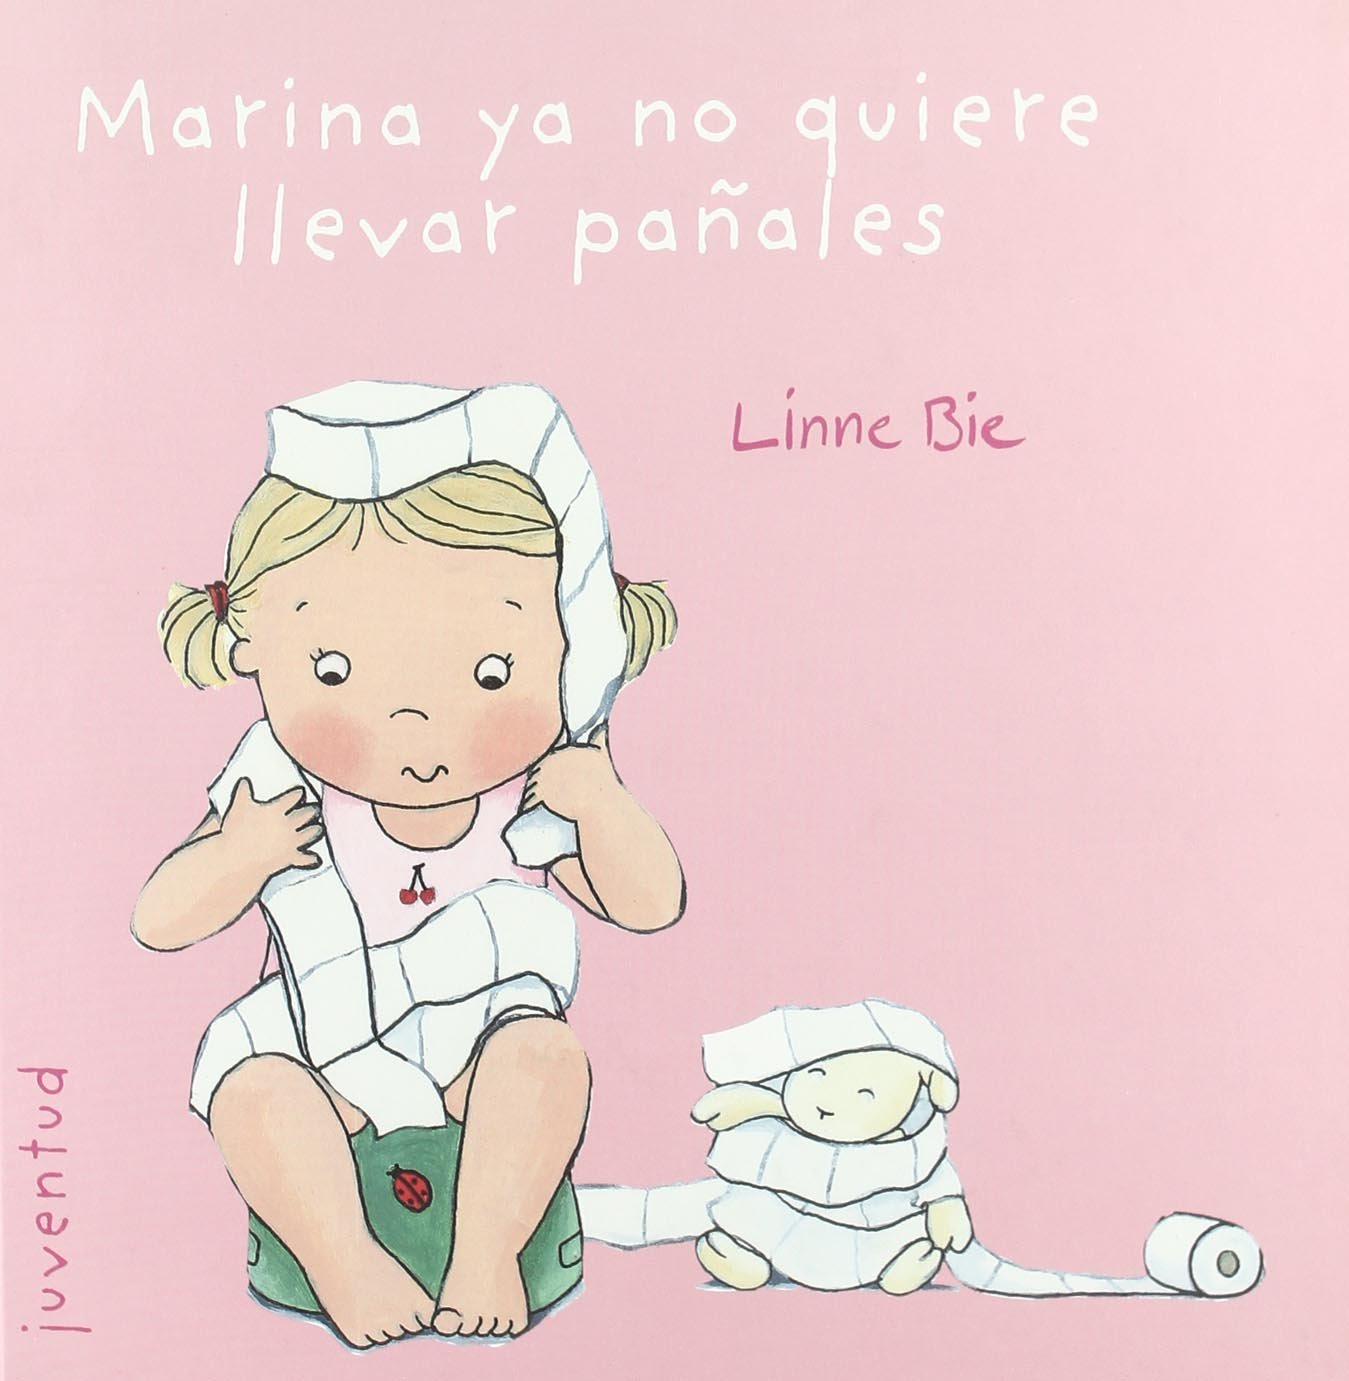 Marina ya no quiere llevar panales / Marina no longer wants to wear diapers (Otros Libros) (Spanish Edition): Linne Bie: 9788426138019: Amazon.com: Books